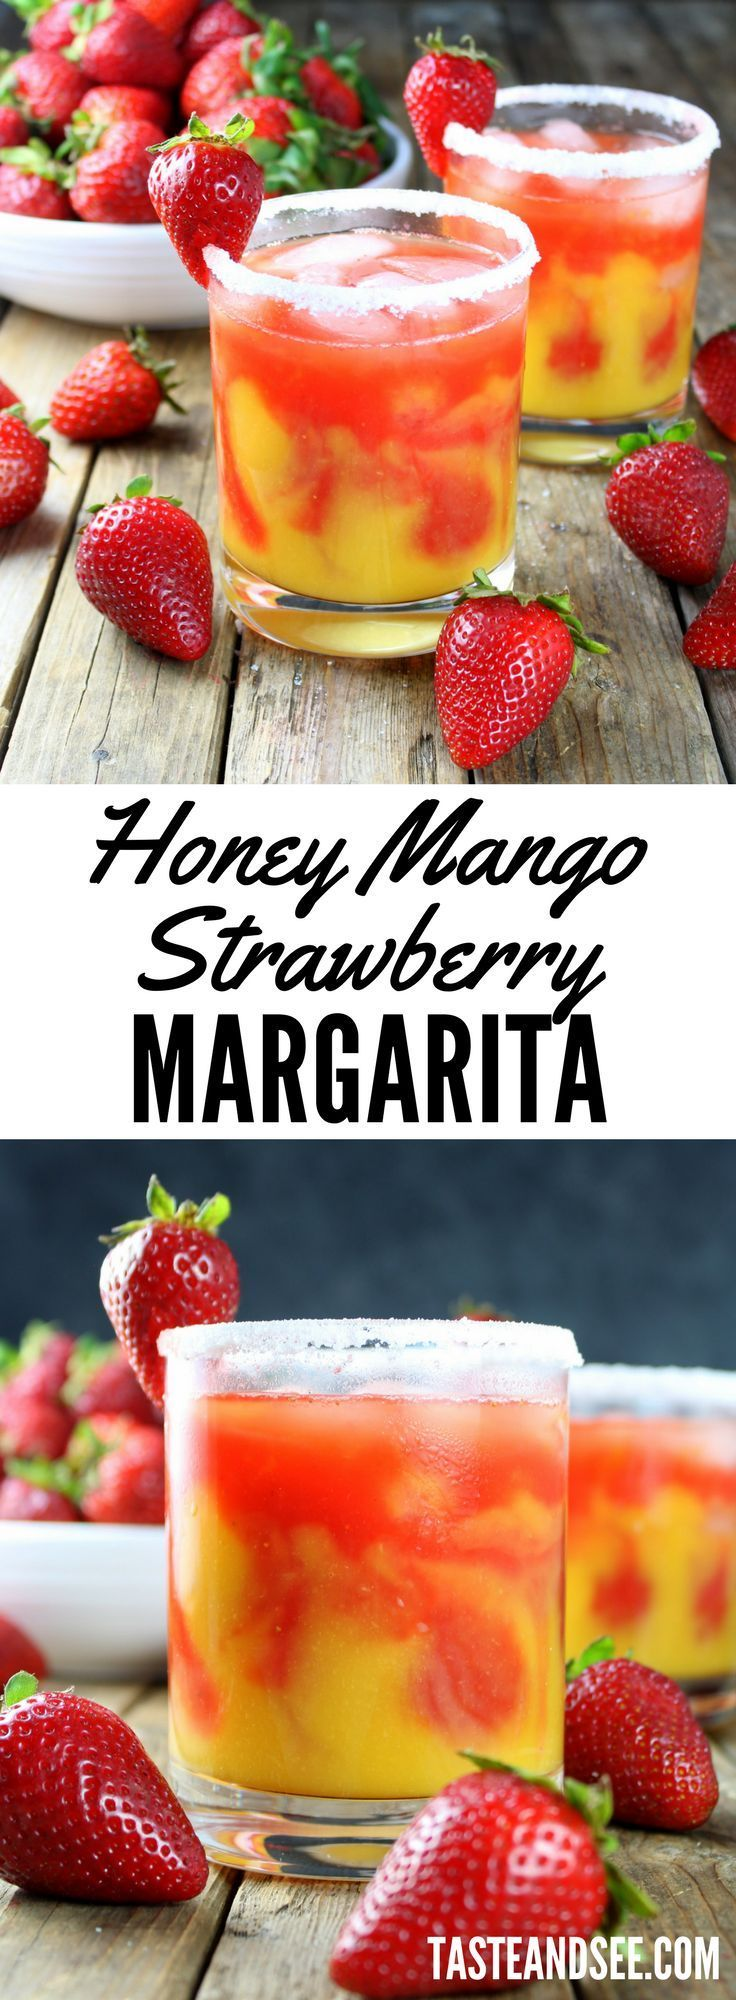 The Honey Mango Strawberry Margarita... fresh, fruity, boozy and delicious!  The perfect cocktail for Taco Tuesday, Cinco de Mayo or anytime you want something tasty and refreshing. #margarita #cincodemayo #tequila #strawberry https://tasteandsee.com